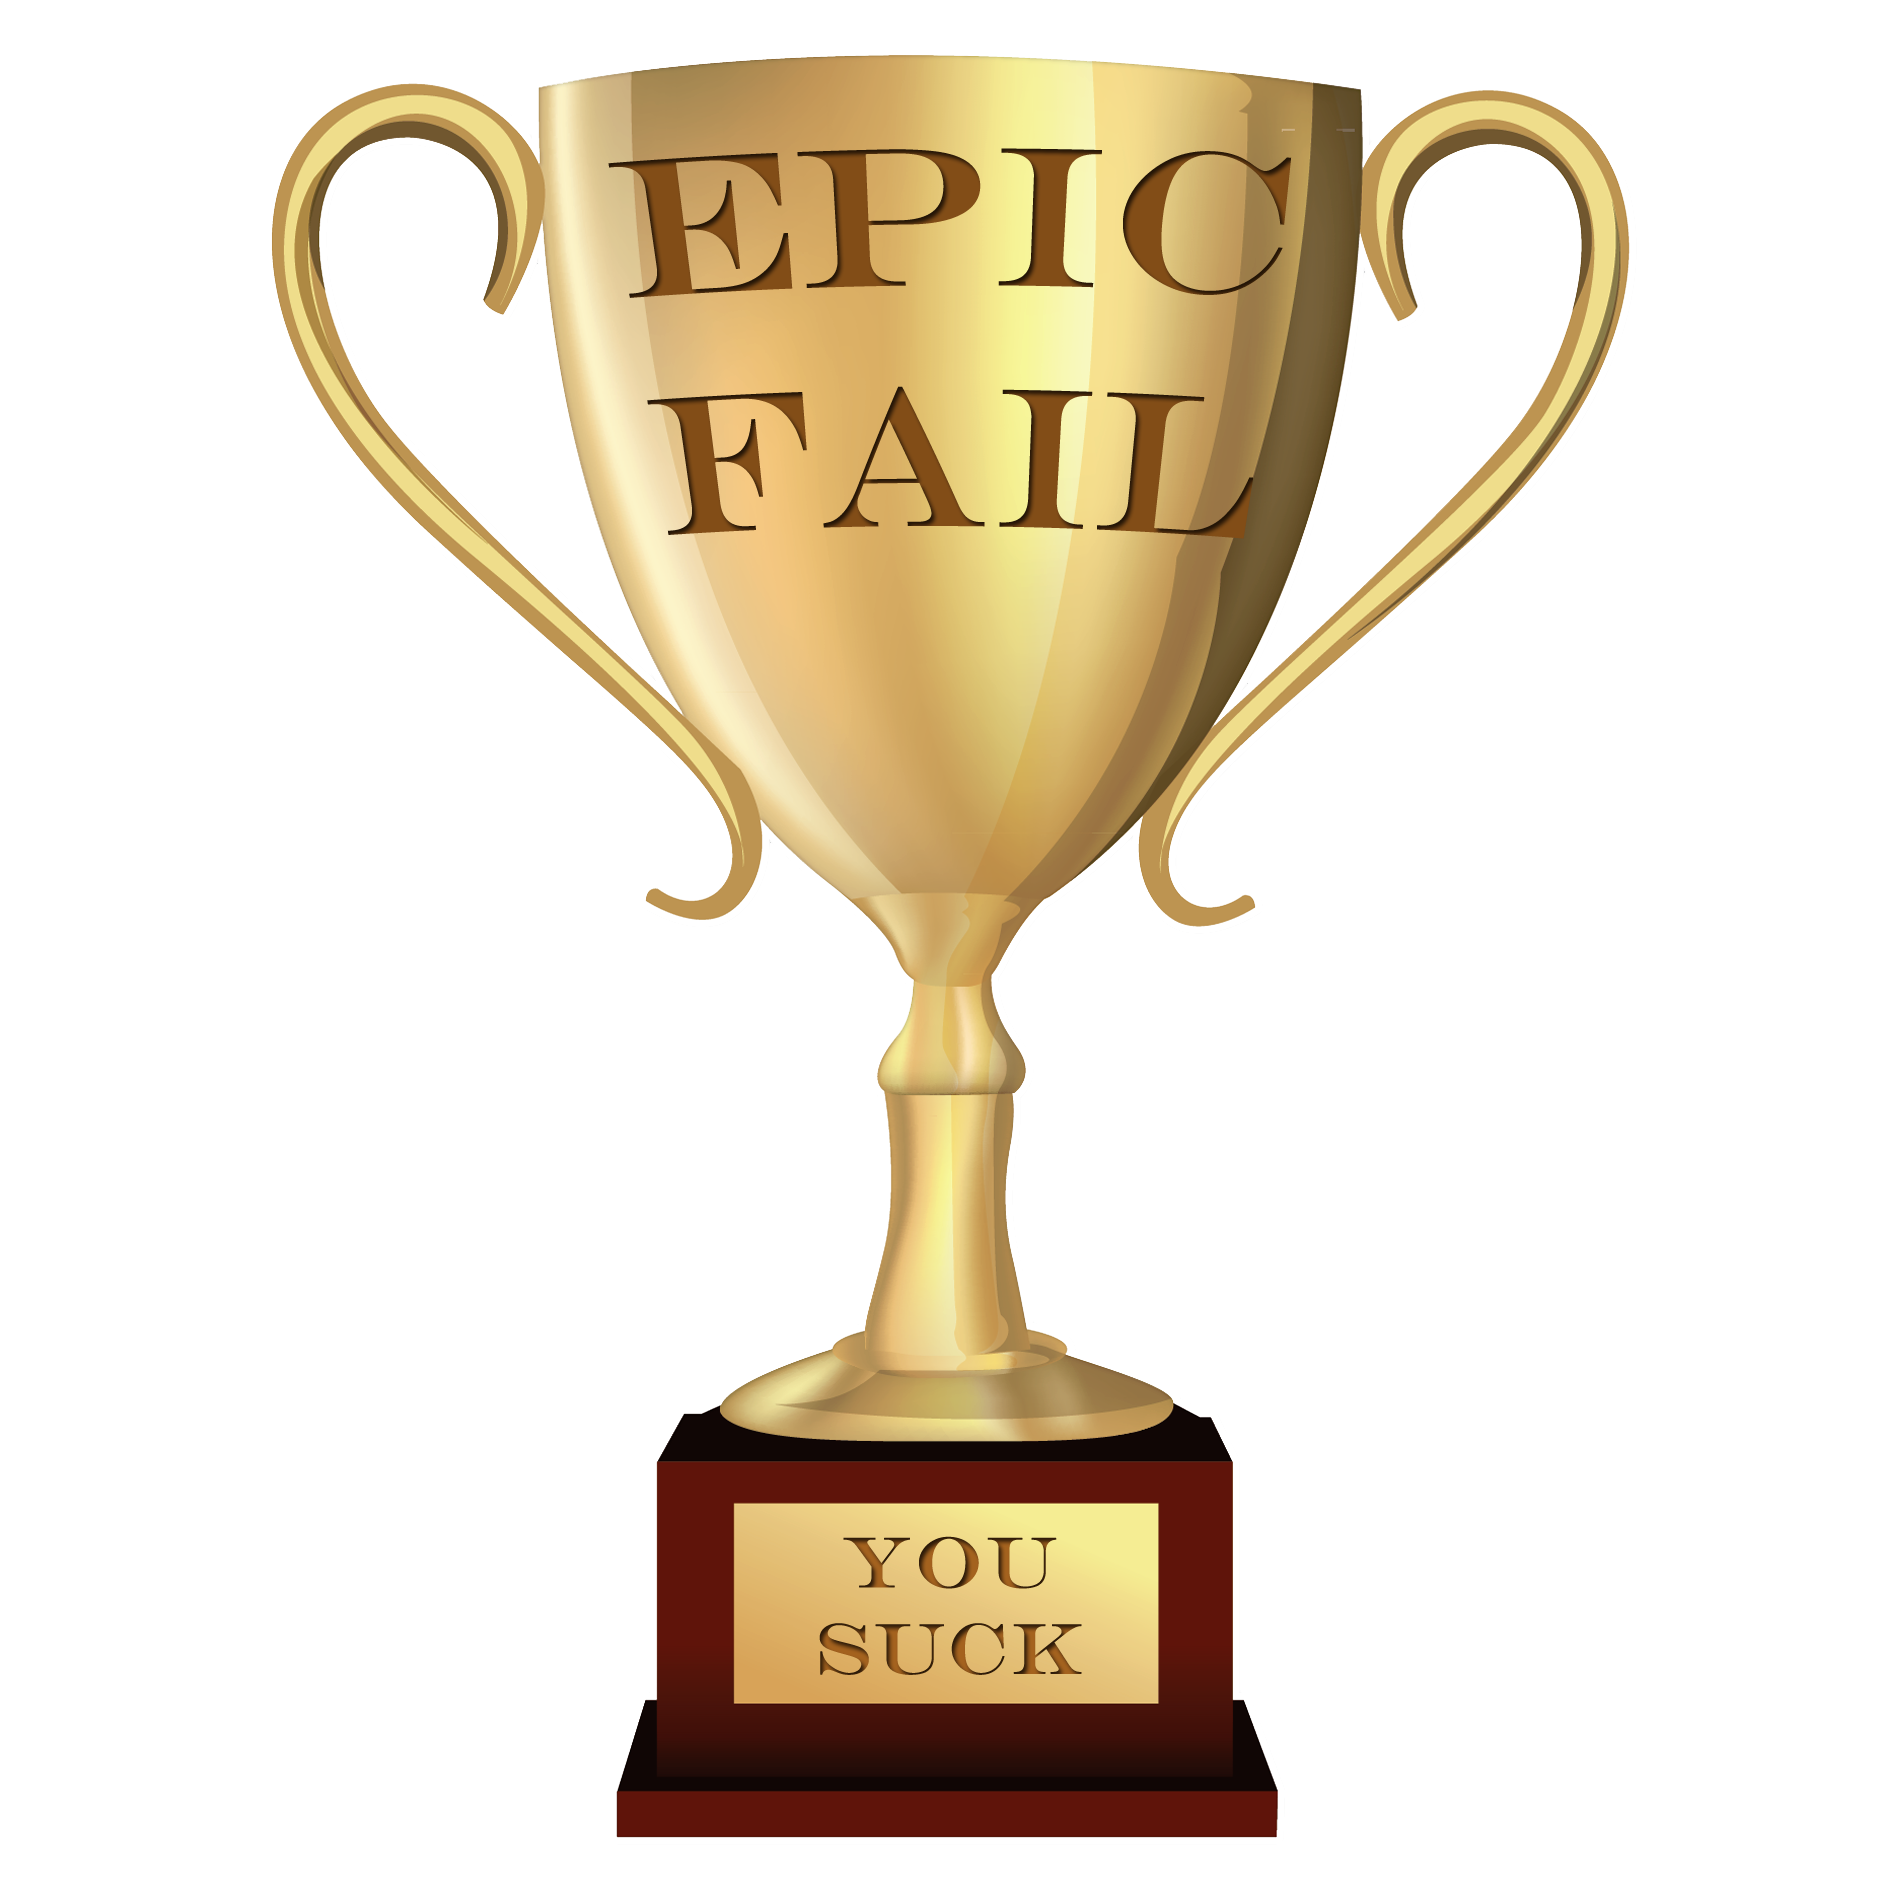 vector free stock Png images all. Transparent trophy